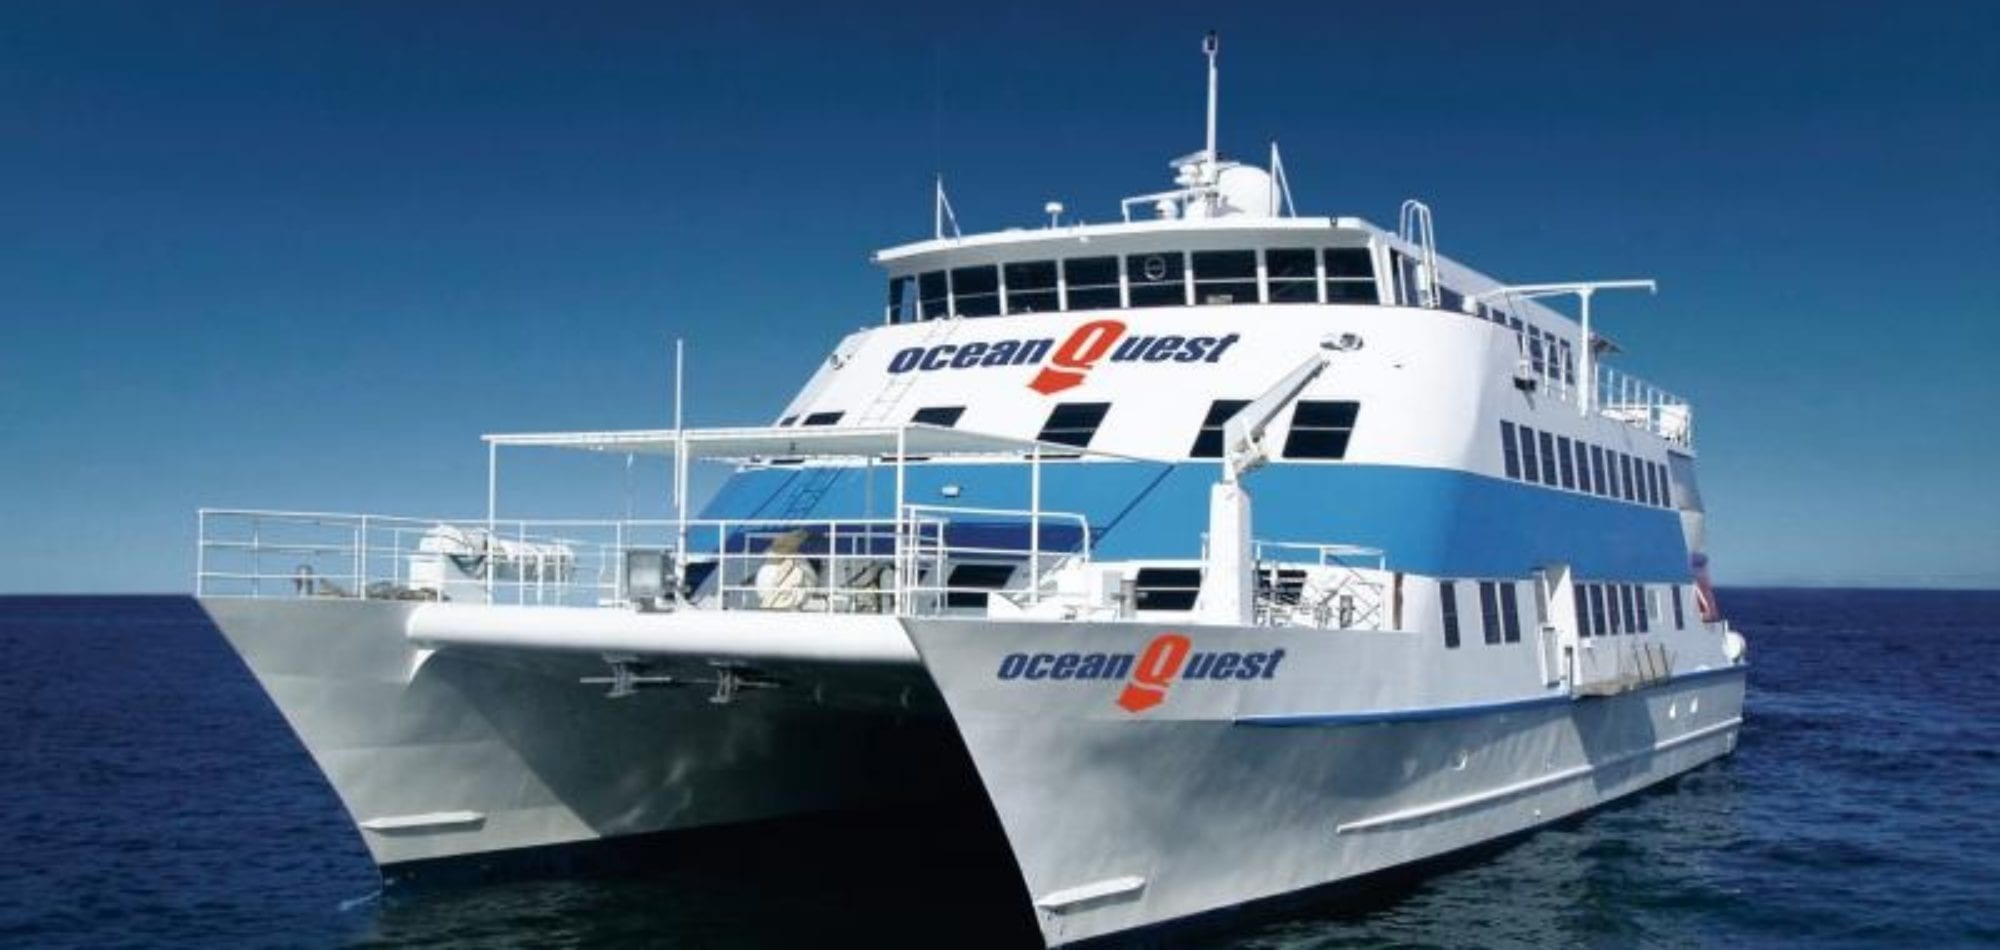 Cairns learn to scuba dive - Oceanquest boat